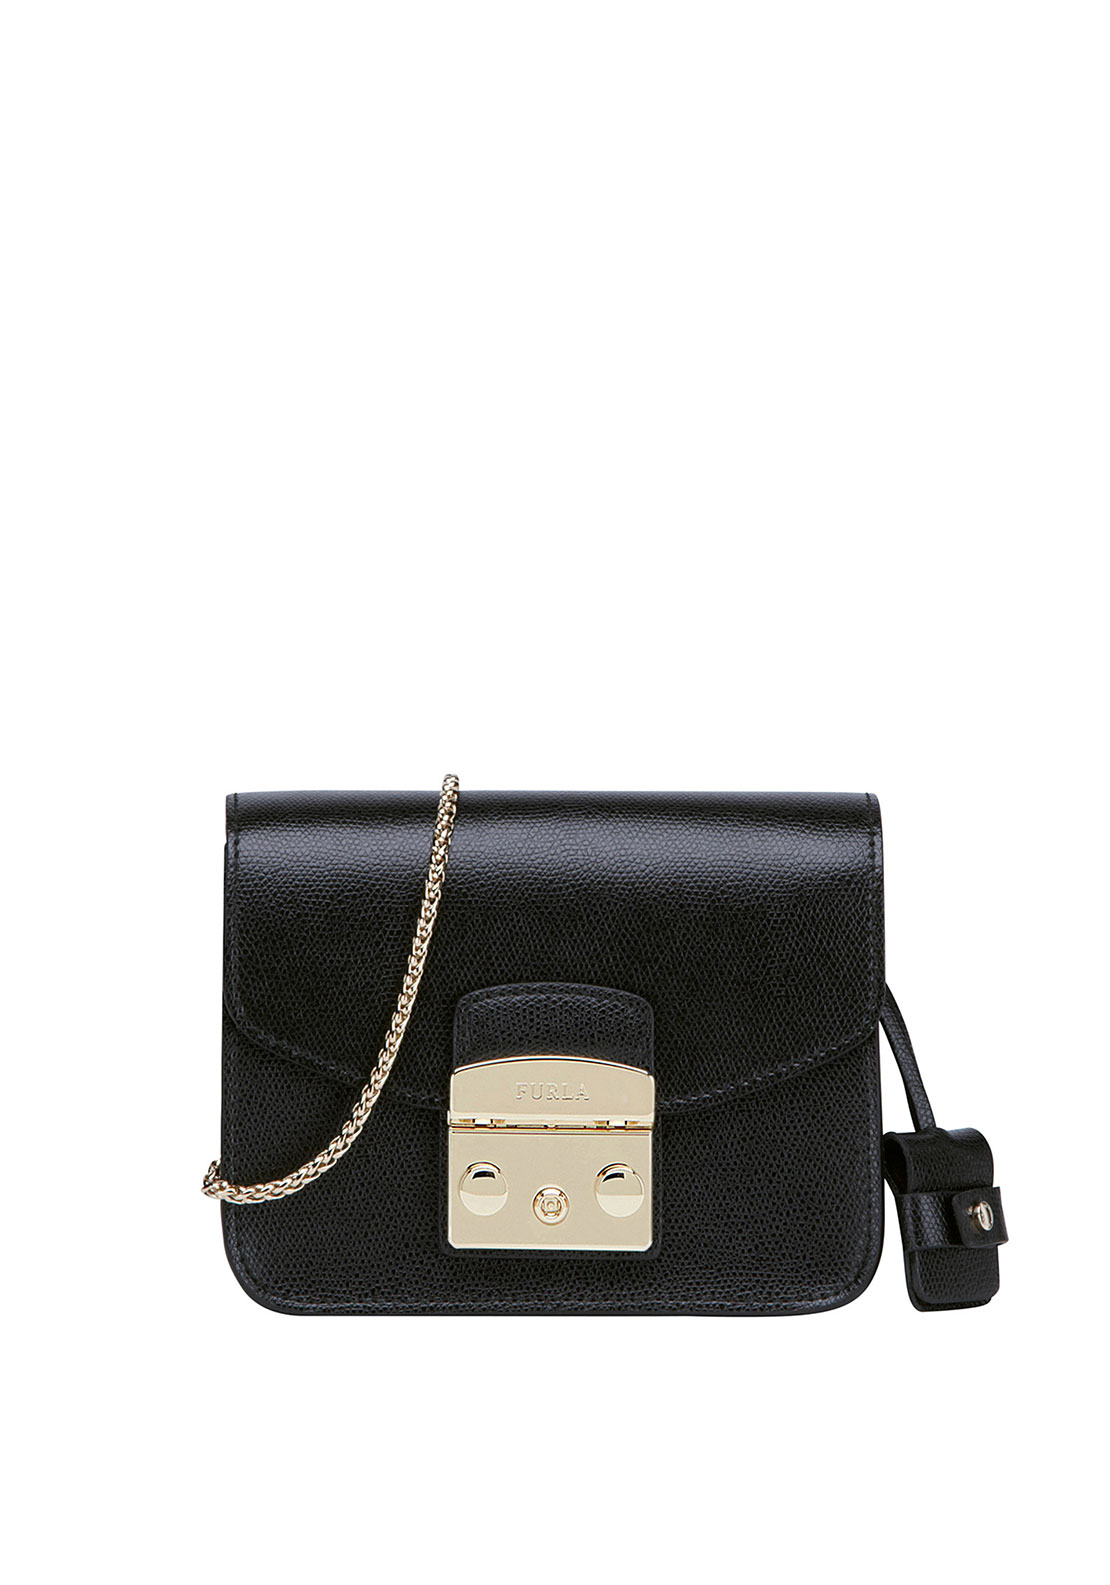 Furla Metropolis Leather Crossbody Mini Bag, Black